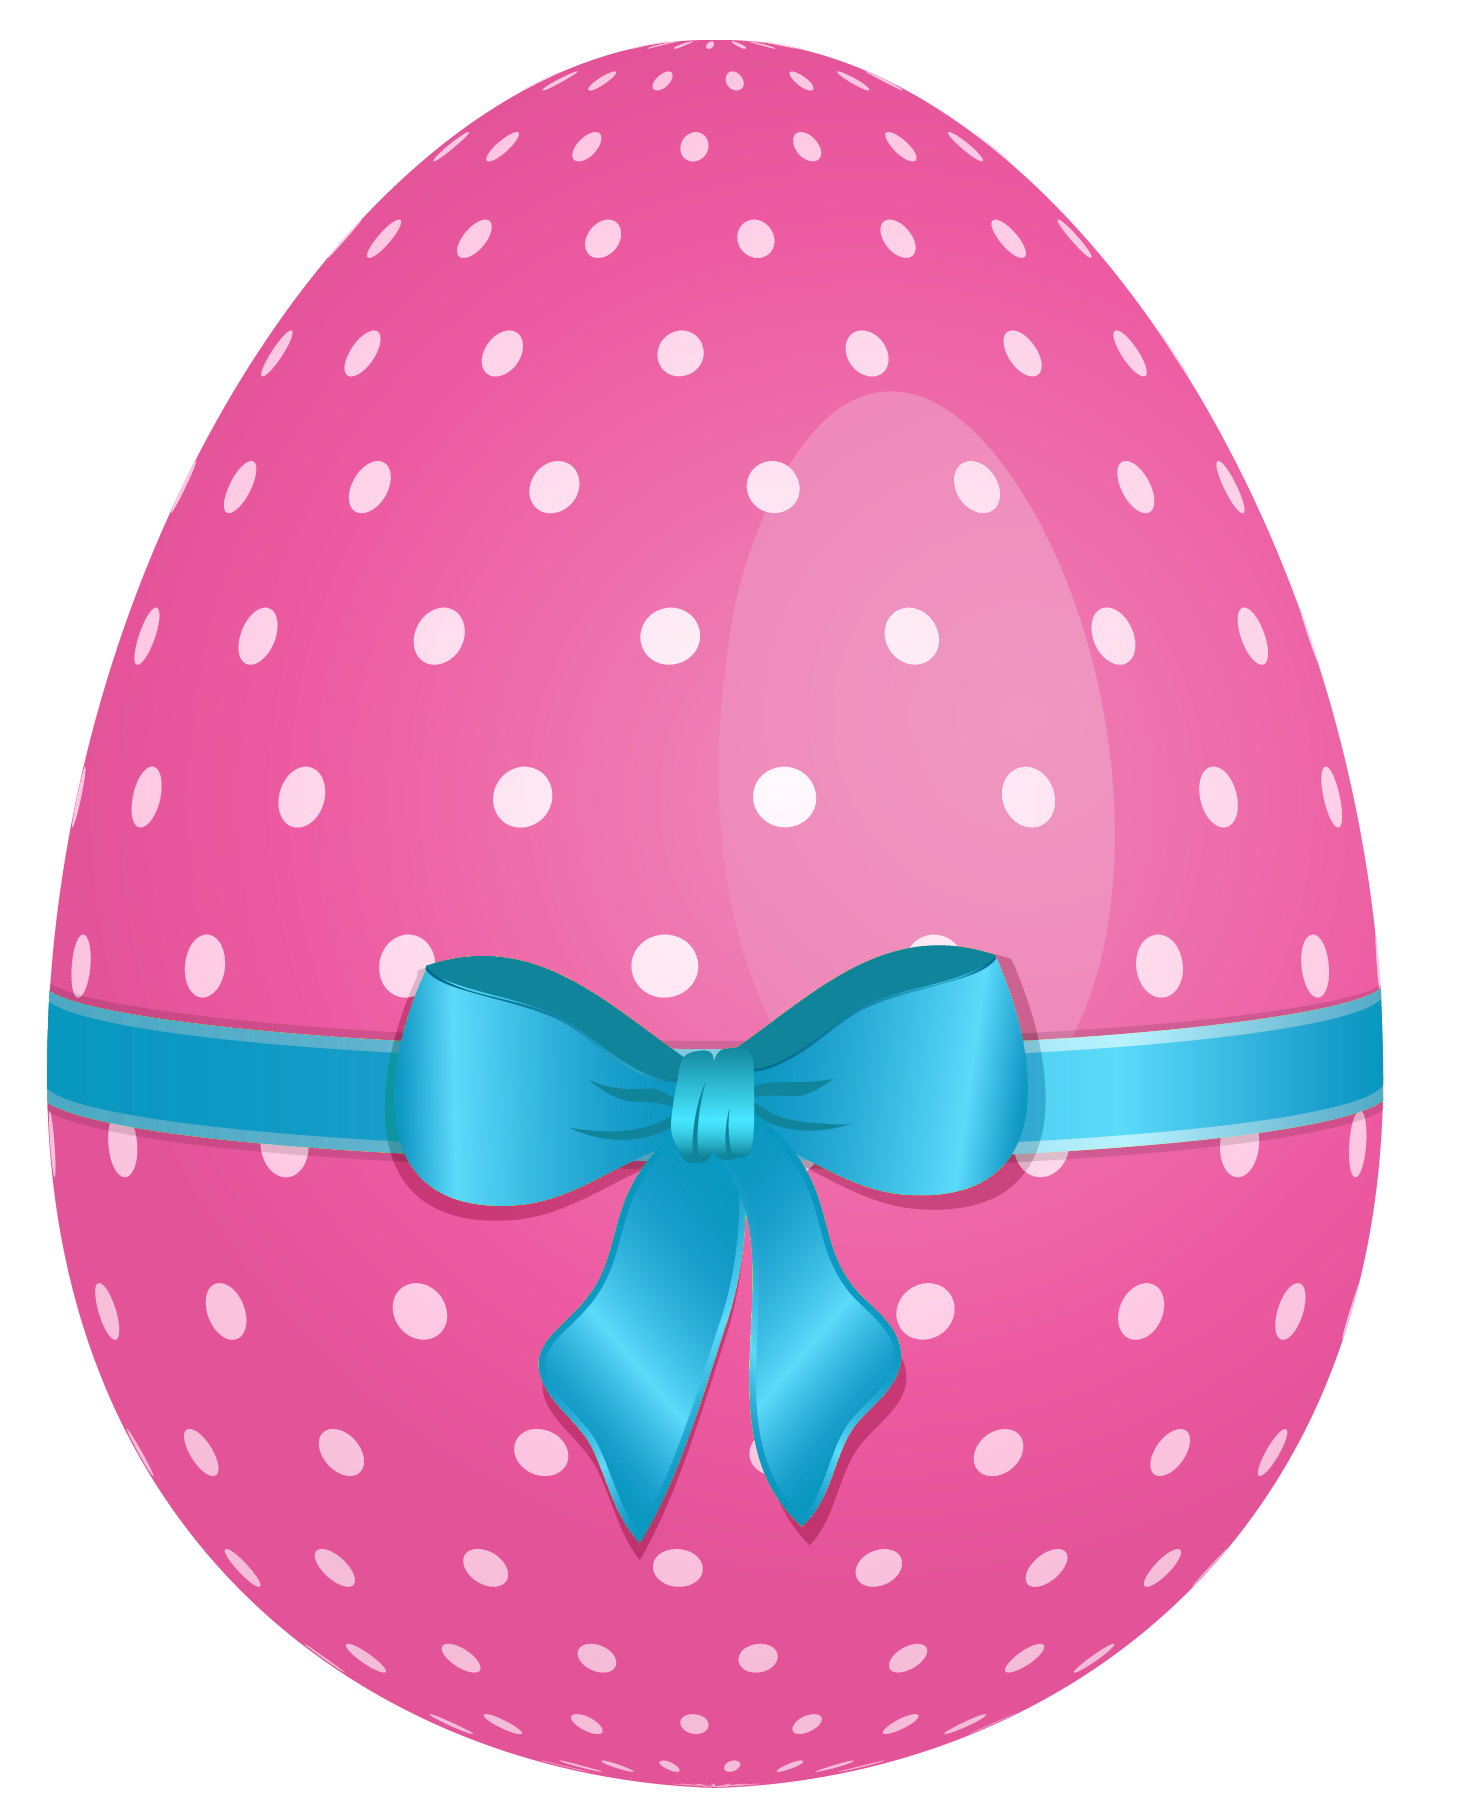 Easter ribbon clipart jpg transparent stock Pink Dotted Easter Egg with Blue Bow PNG Clipart | Gallery ... jpg transparent stock